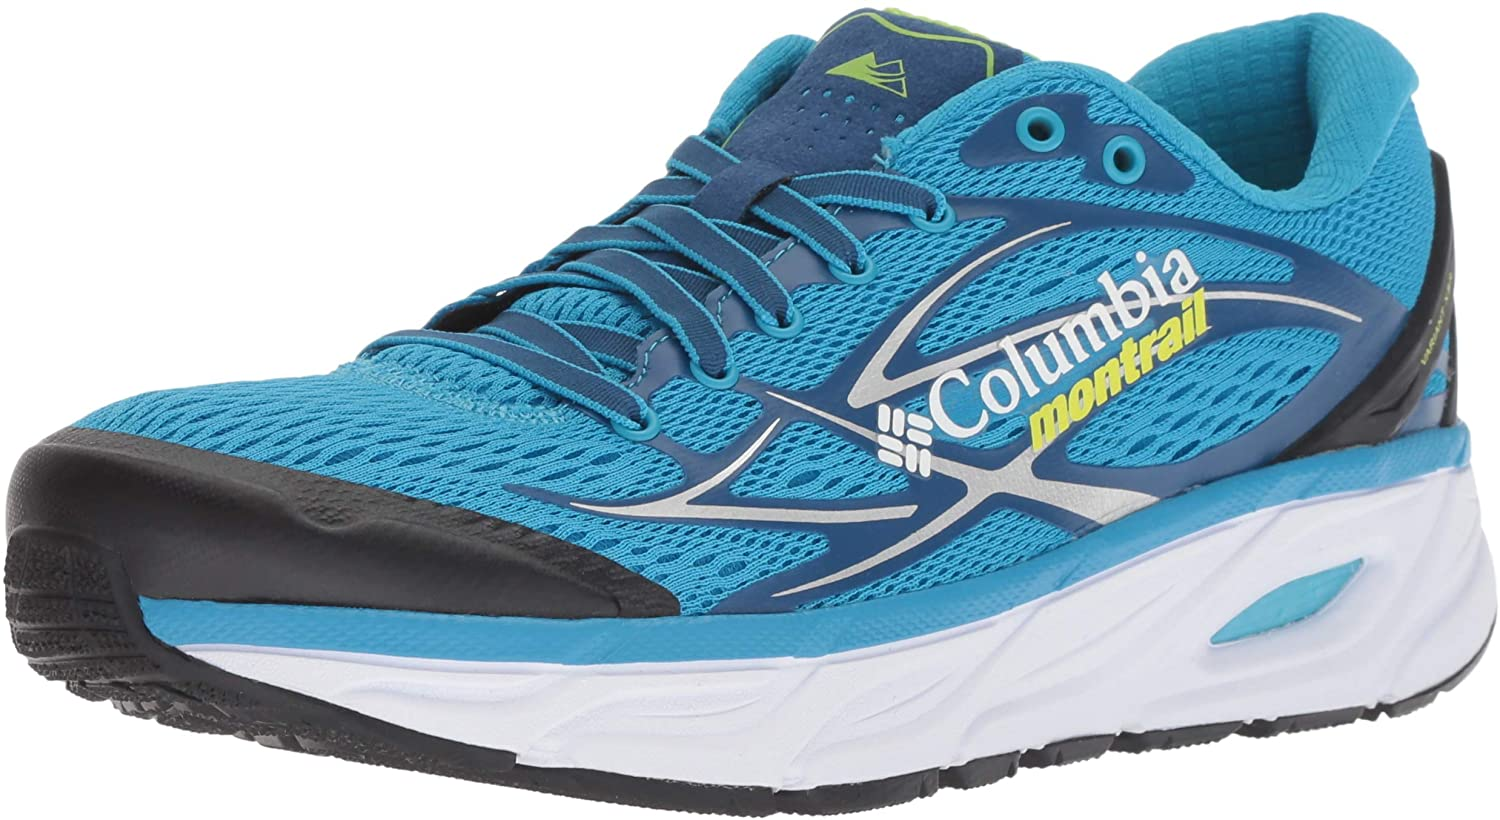 Columbia Men's Variant X.S.R. Trail Running Shoe, Blue chill, Fission, 12 D US